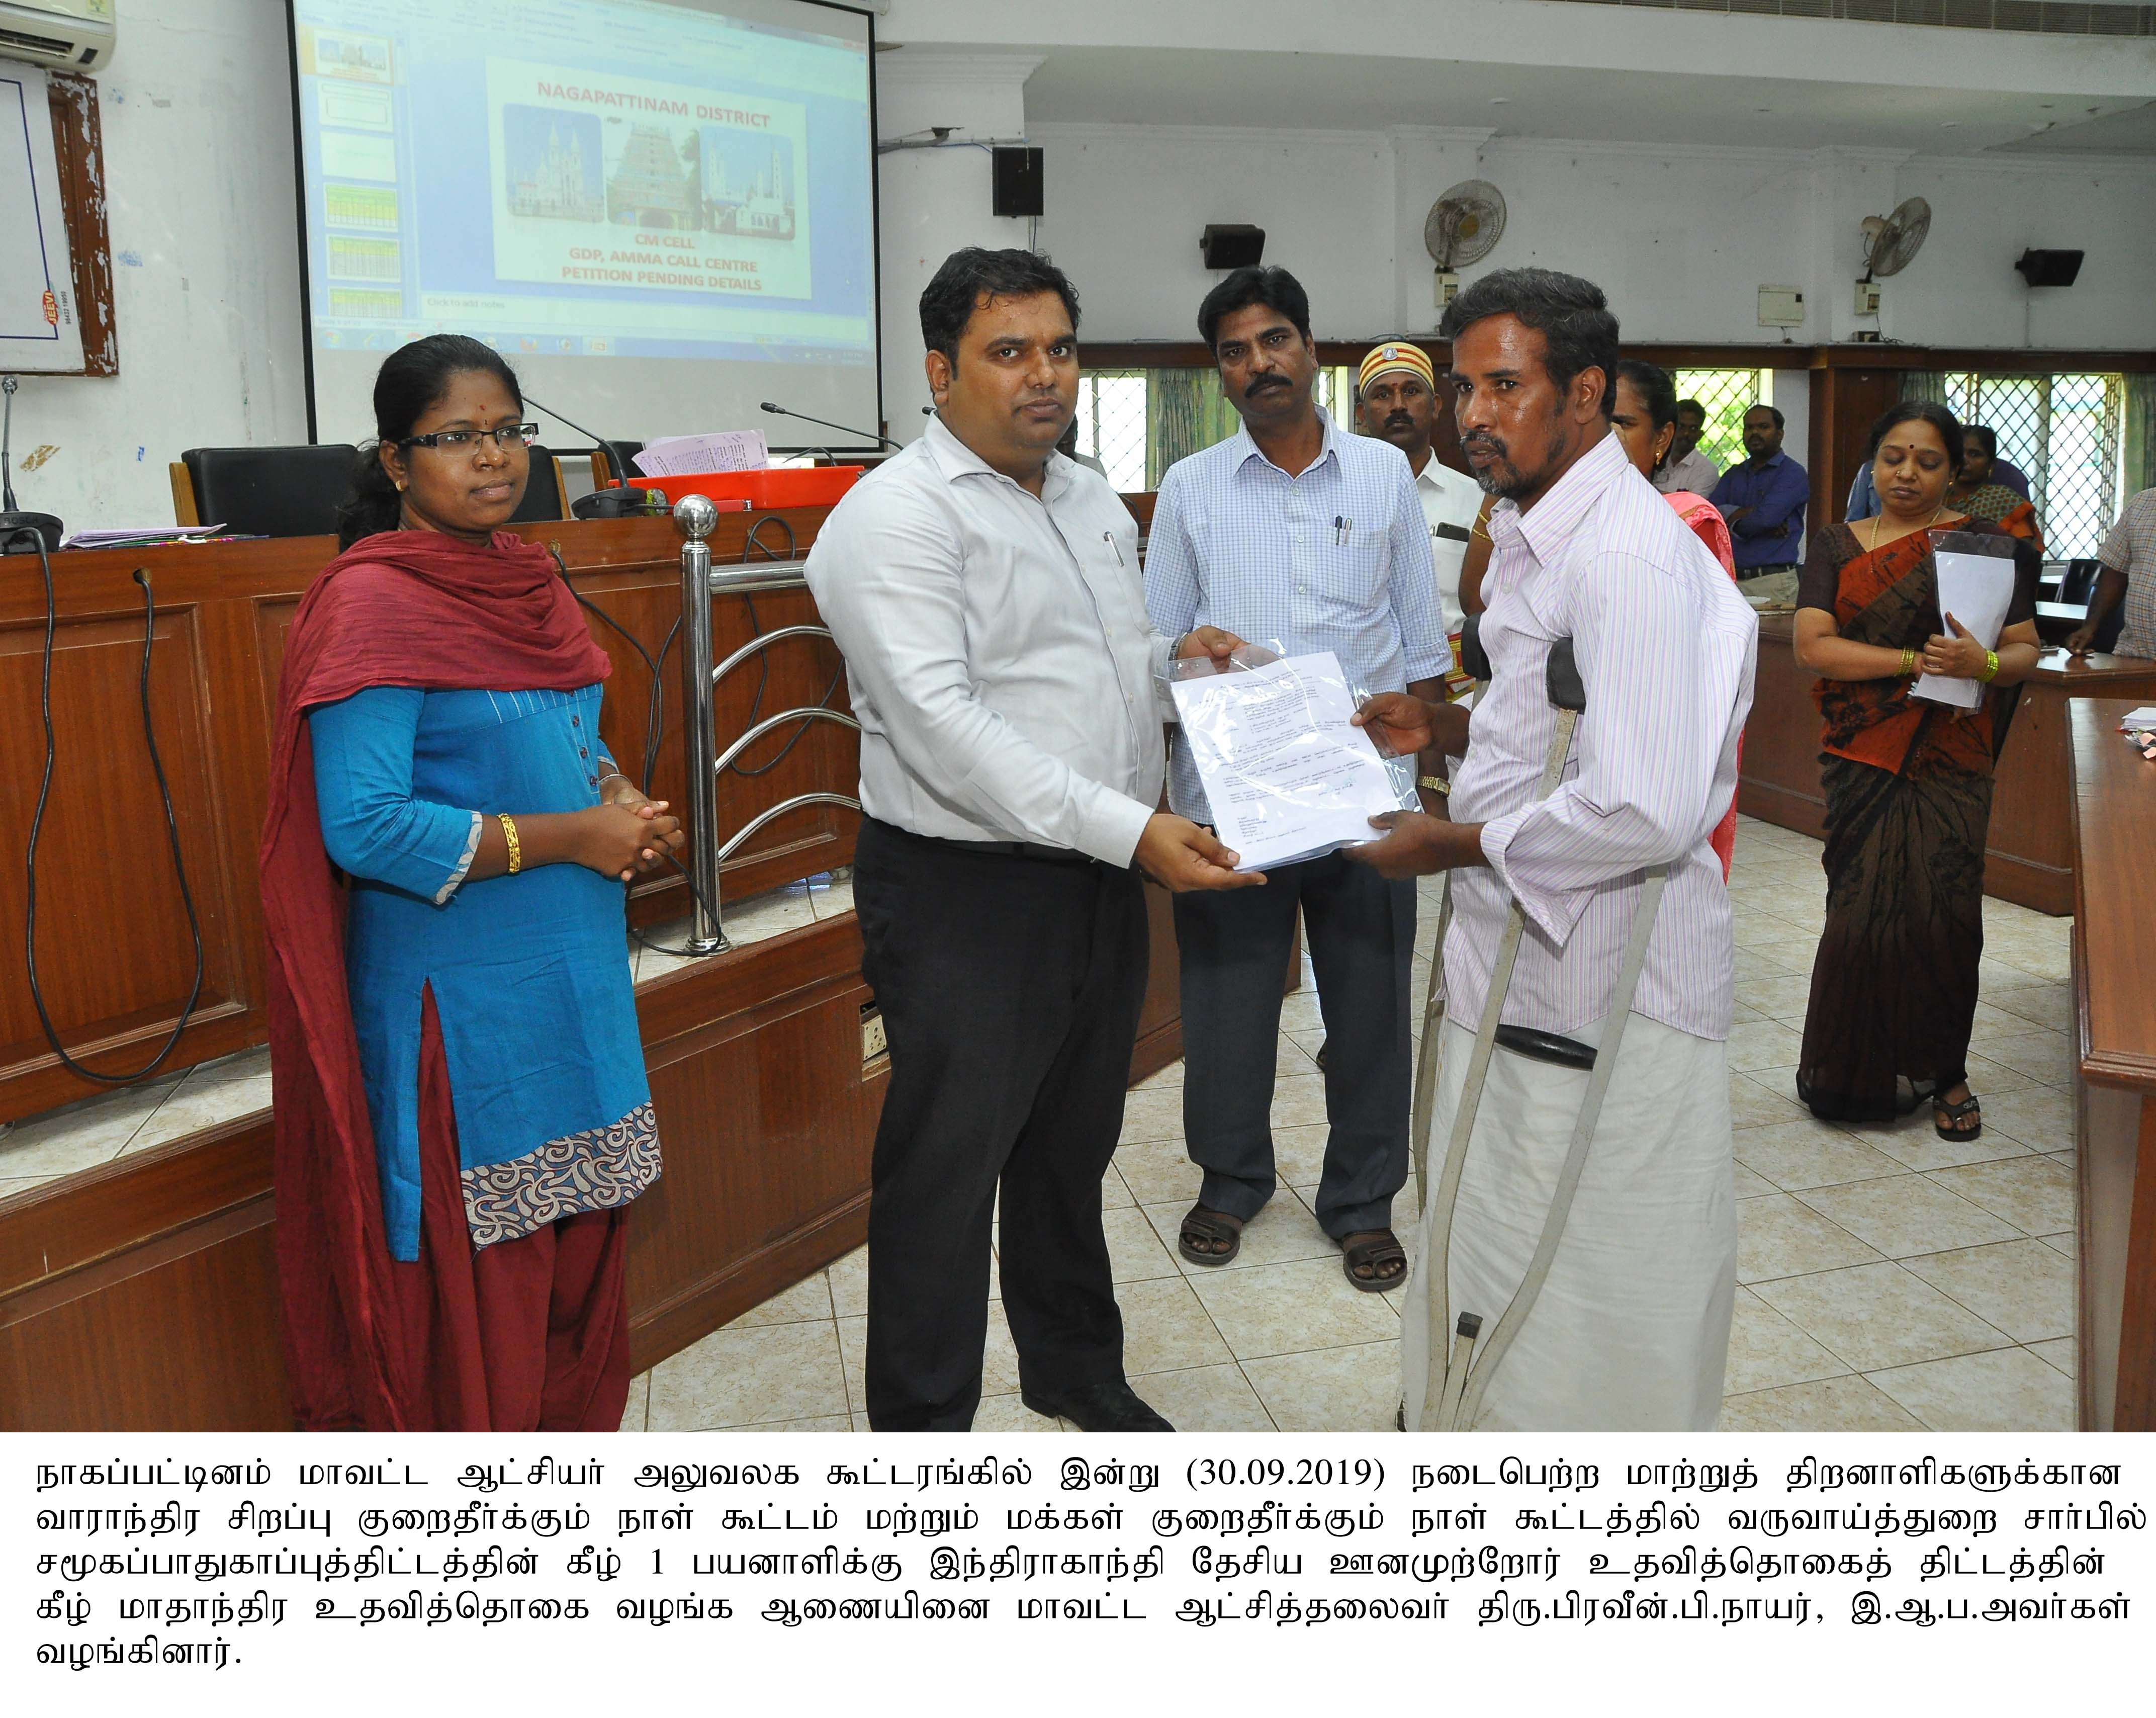 Grievance Day Petition (GDP) on 30.09.2019